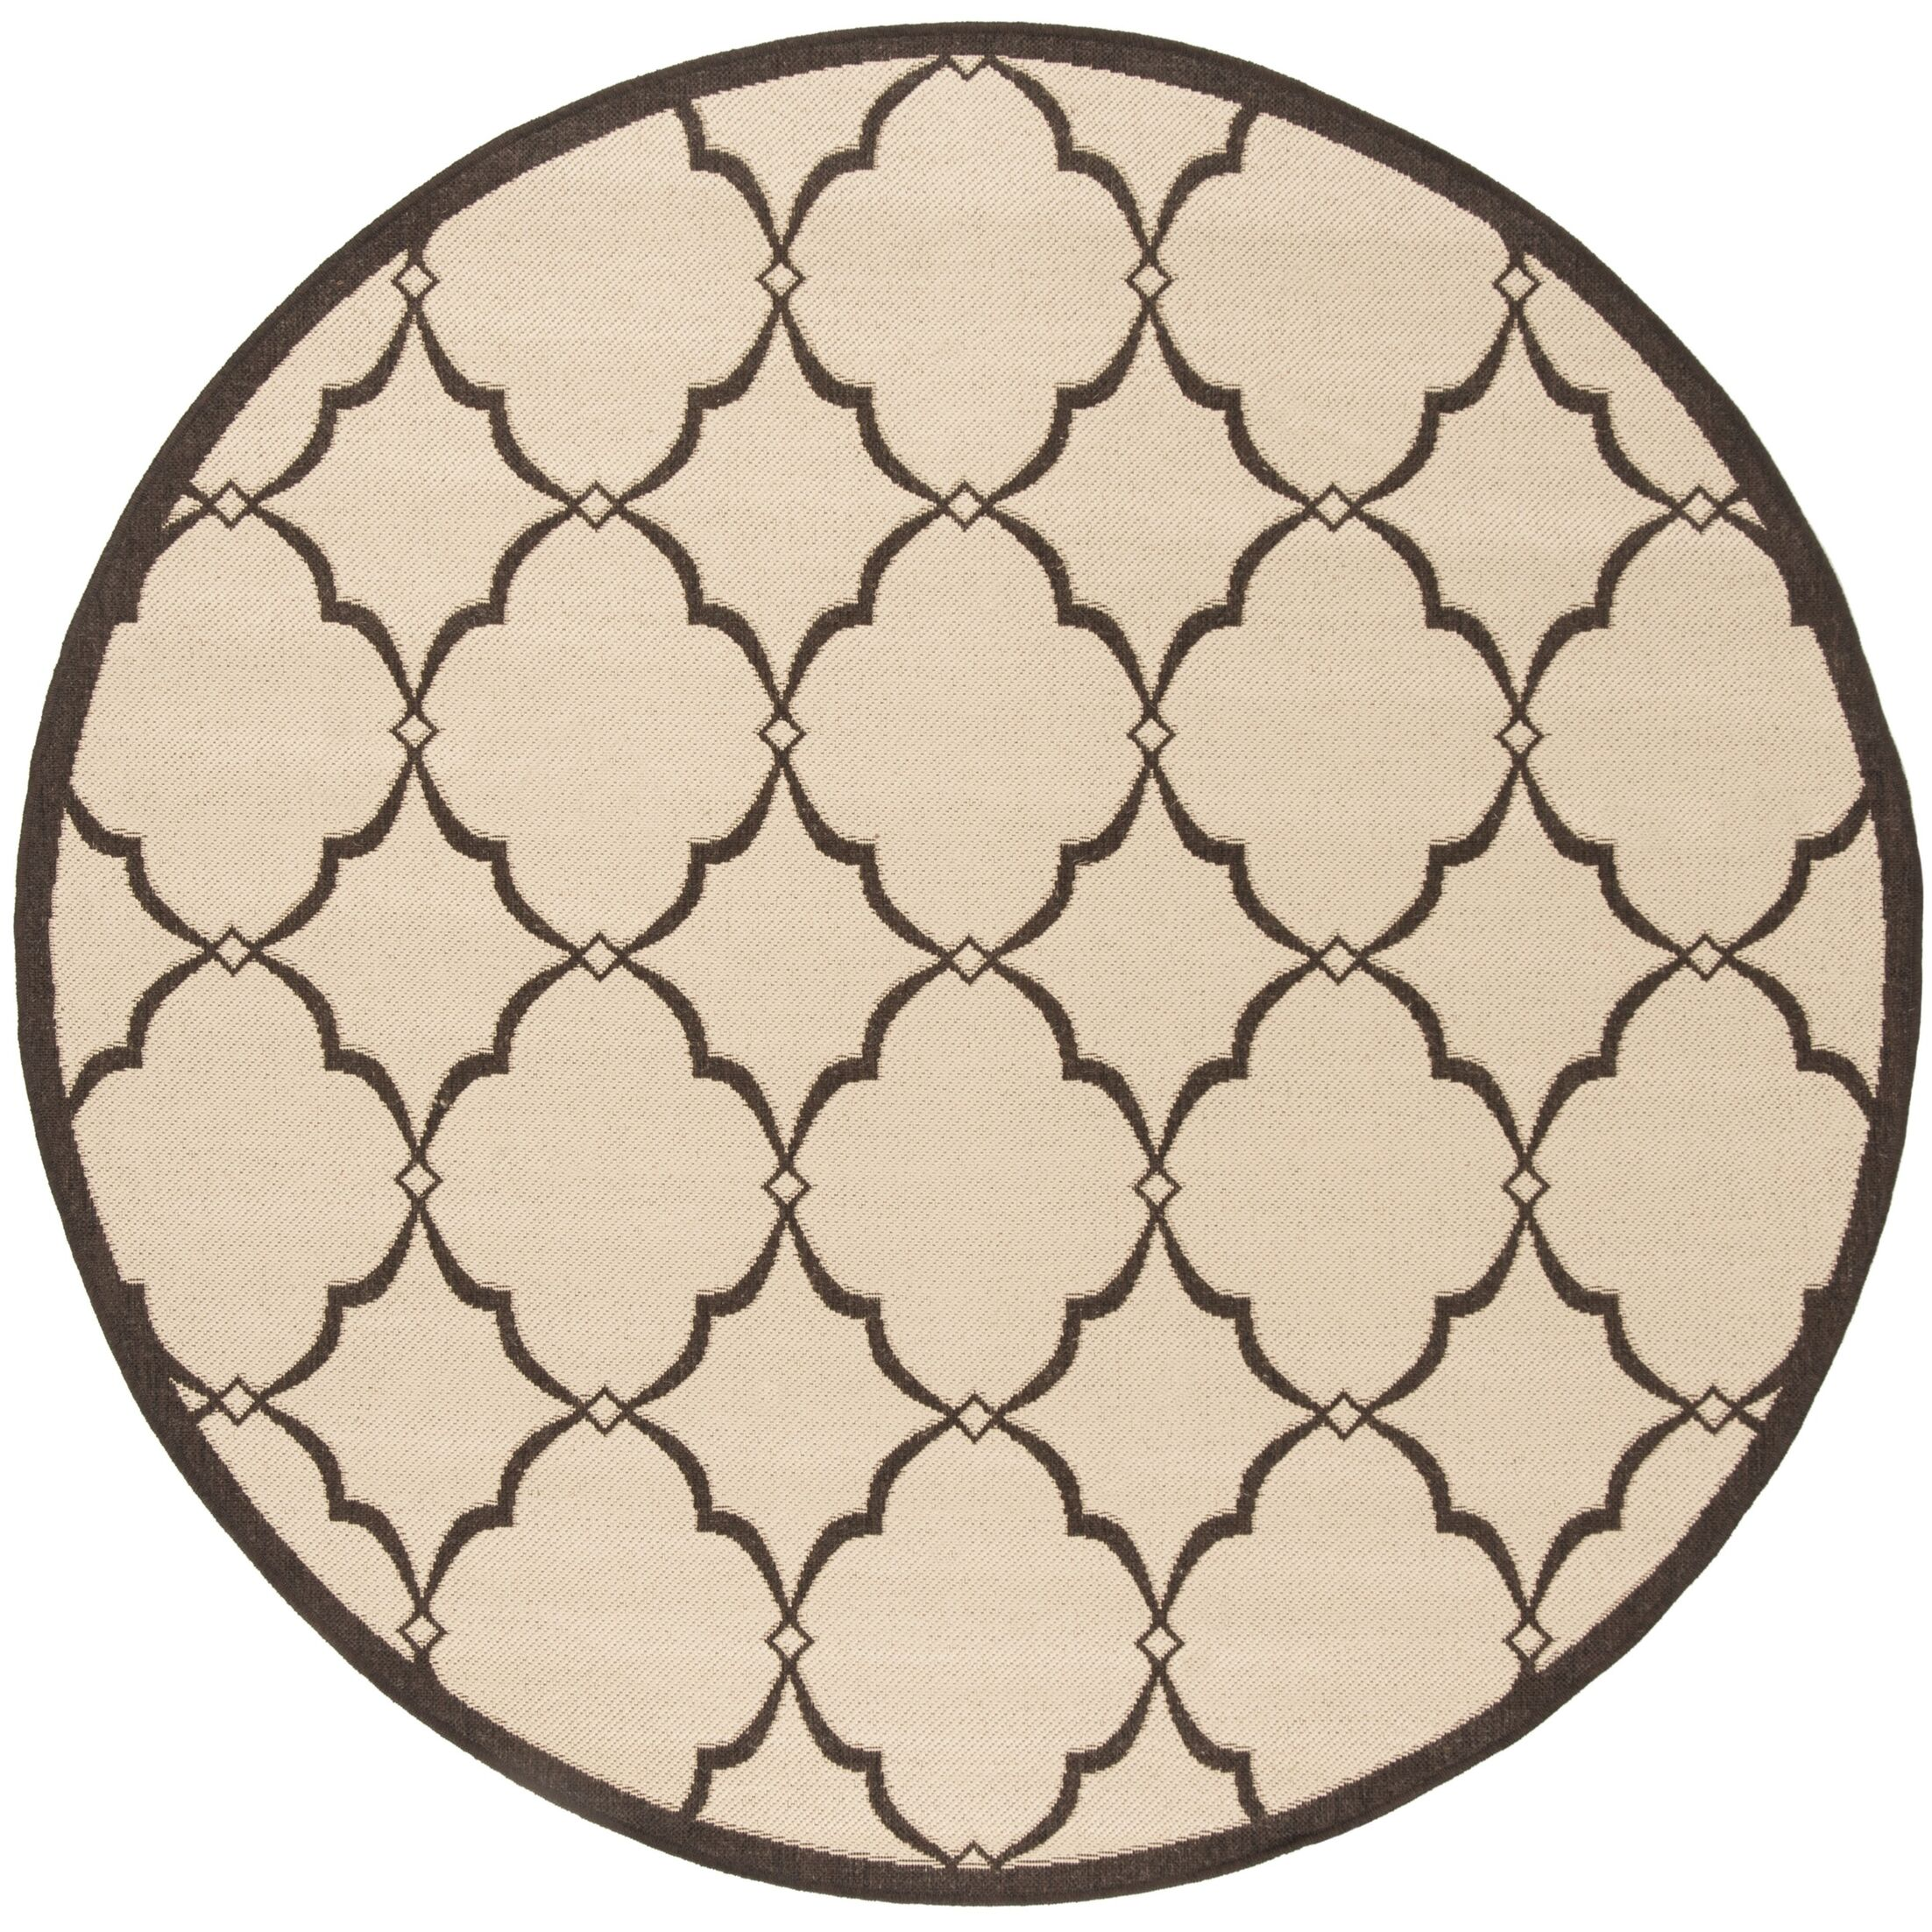 Croker Cream/Brown Area Rug Rug Size: Round 6'7